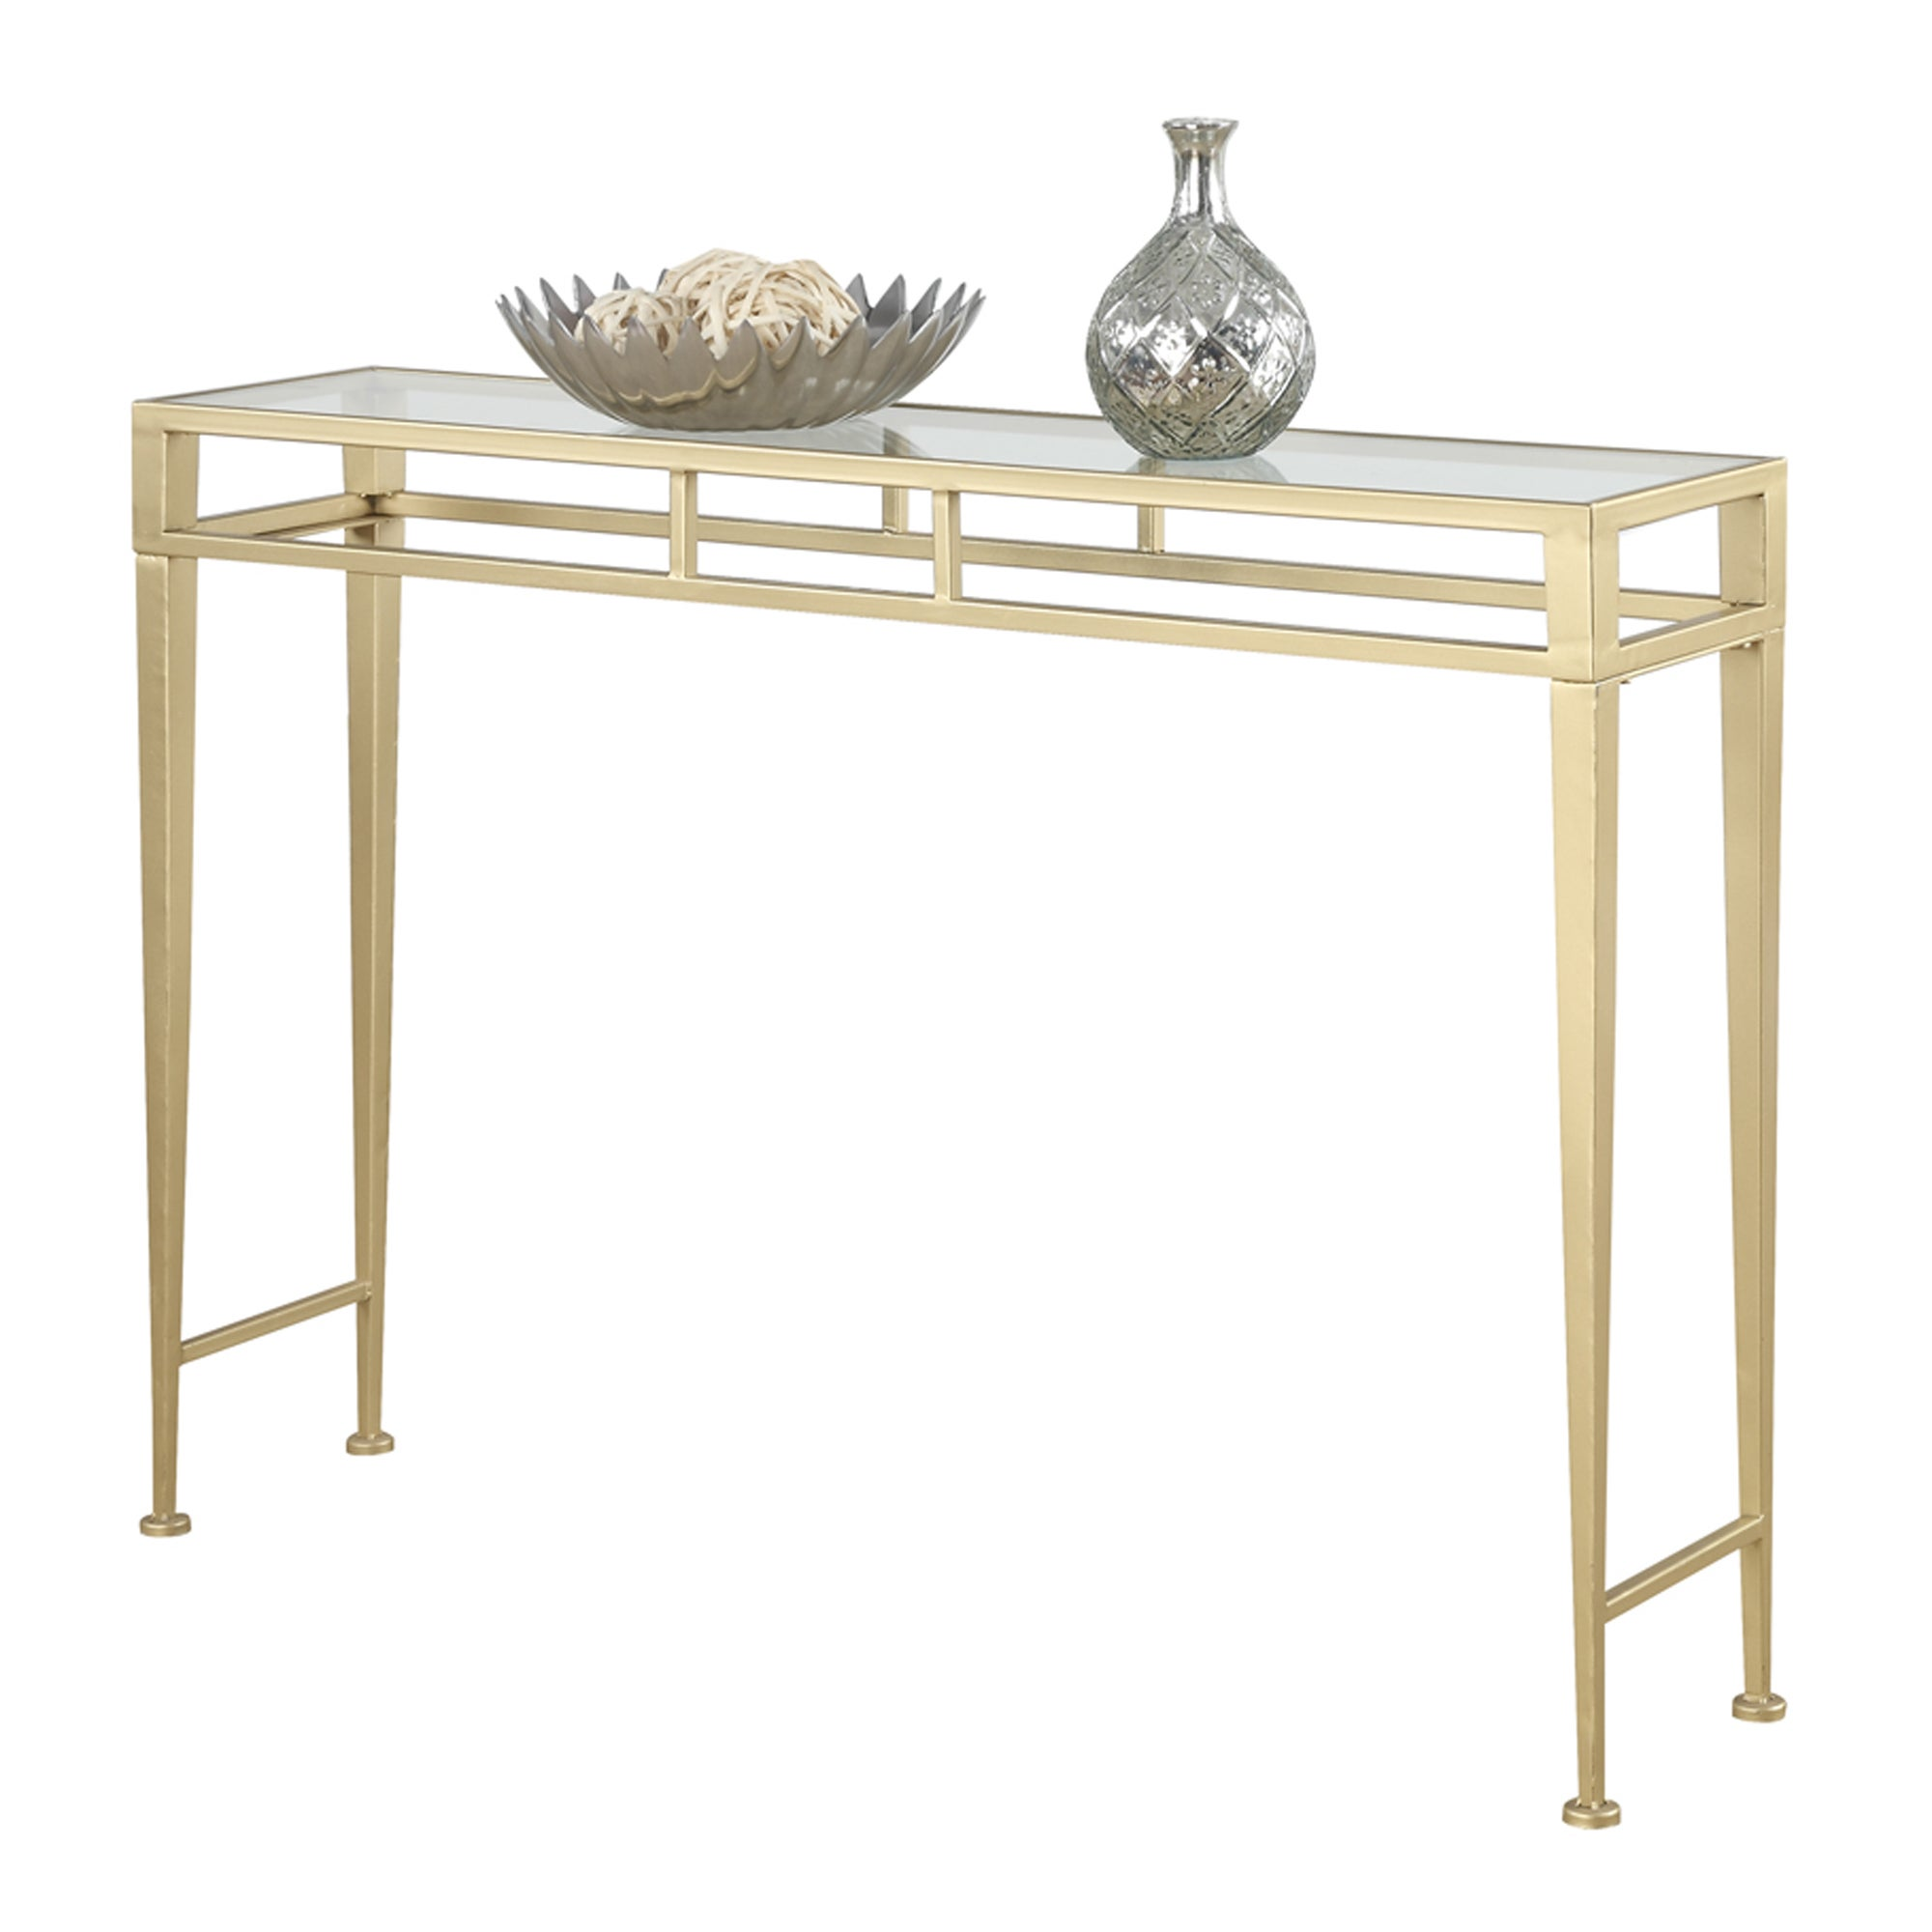 Shop Silver Orchid Grant Hall Iron And Glass Console Table   Free Shipping  Today   Overstock.com   20559166